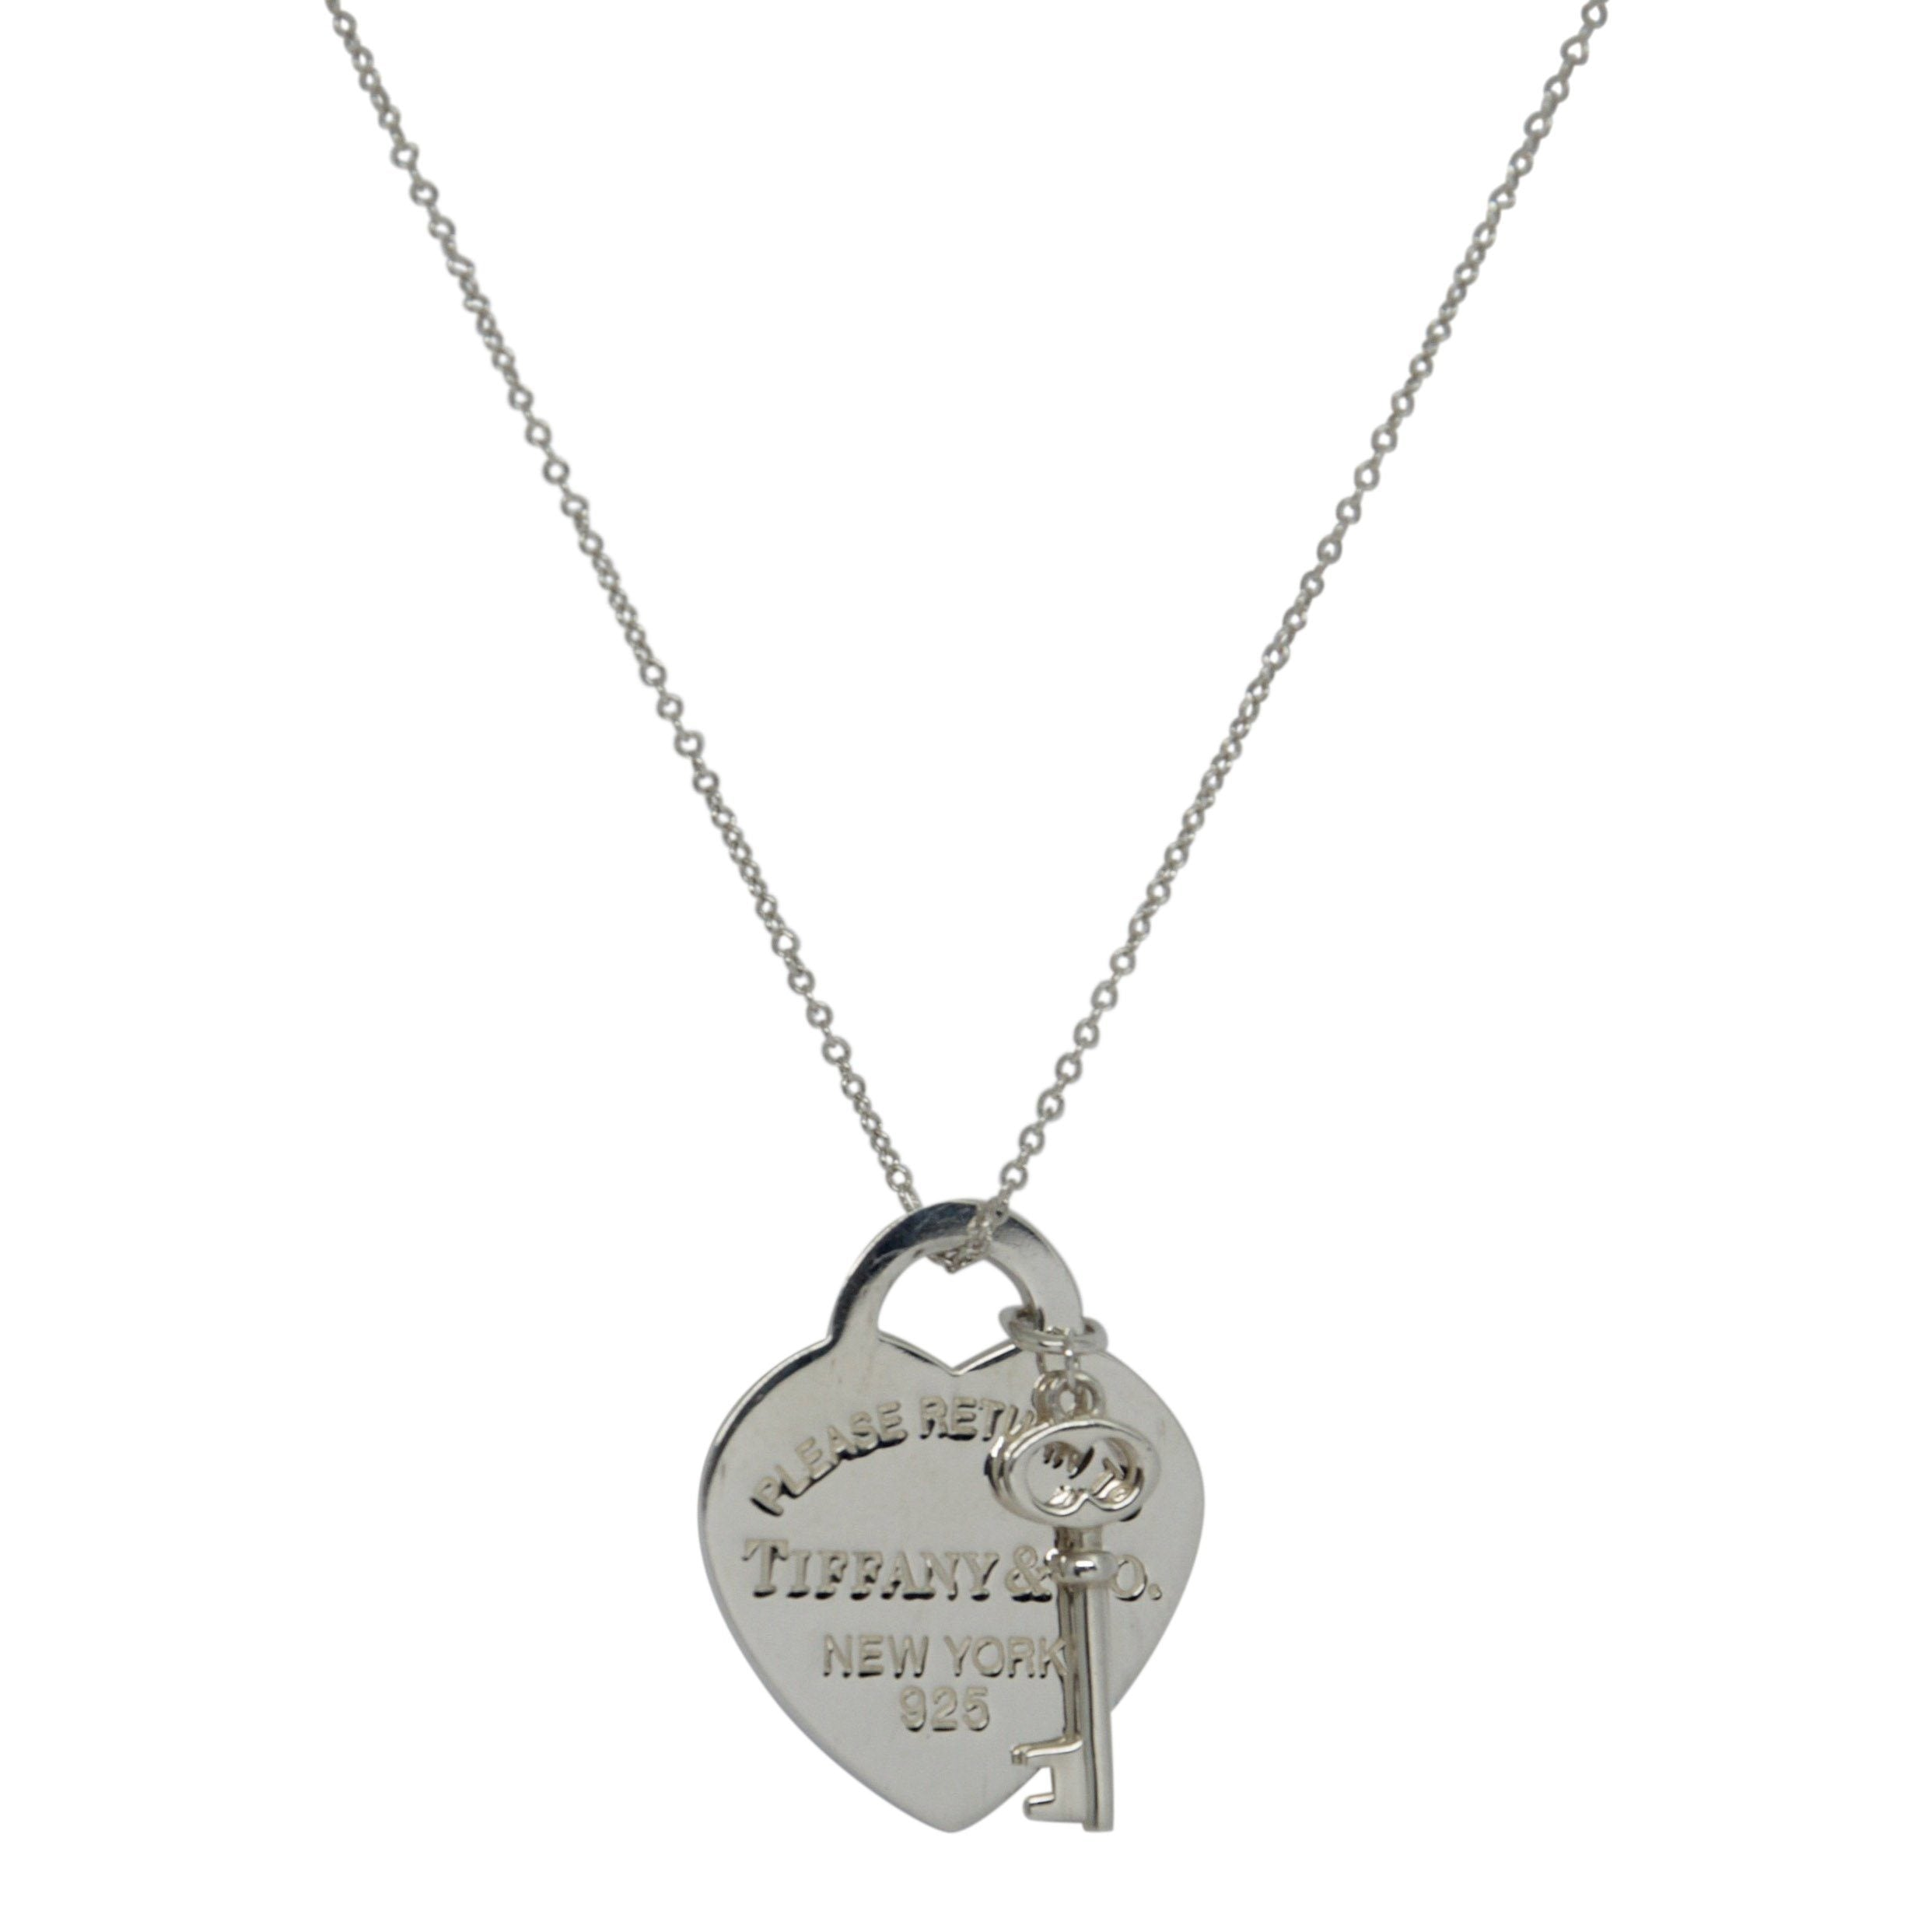 87663b6ee Tiffany & Co. Return to Tiffany Heart Tag with Key Pendant Necklace  Necklaces Tiffany ...